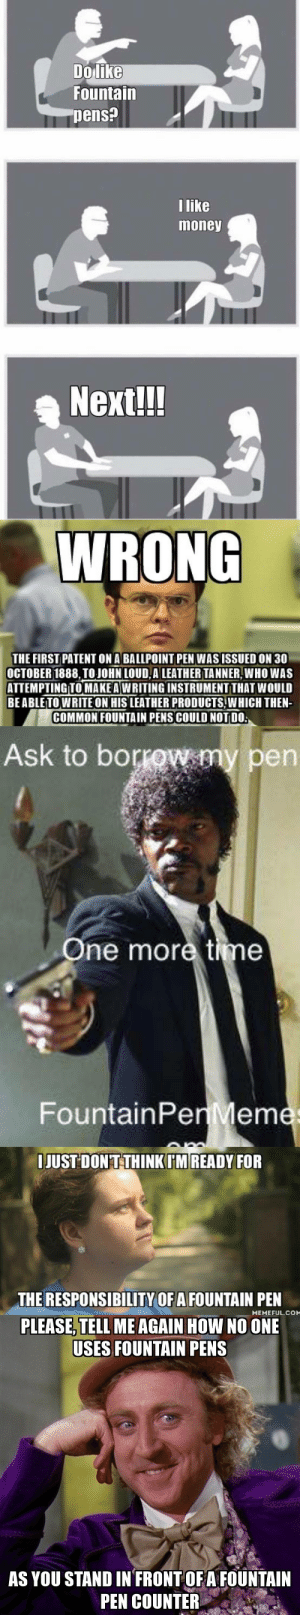 "Fucking, Life, and Meme: Dolike  Fountain  pens?  like  money  Nextll!   WRONG  THE FIRST PATENT ON A BALLPOINT PEN WASISSUED ON 30  OCTOBER 1888, TO JOHN LOUD,A LEATHERTANNER,WHO WAS  ATTEMPTINGTO MAKE A WRITING INSTRUMENT THAT WoULD  BEABLETOWRITE ON HIS LEATHER PRODUGTSIW HICH THEN  COMMON FOUNTAIN PENS COULD NOT DO   Ask to bor  en  ne more time  FountainPen Mem   IJUST DONTTHINKIM READY FOR  THE RESPONSIBILITY OF A FOUNTAIN PEN  MEMEFUL. COM   PLEASE, TELL MEAGAIN HOW NO ONE  USES FOUNTAIN PENS  AS YOU STAND IN FRONT OFAFOUNTAIN  PEN COUNTER hurloaned:just looked up ""fountain pen meme"" and im having the time of my fucking life"